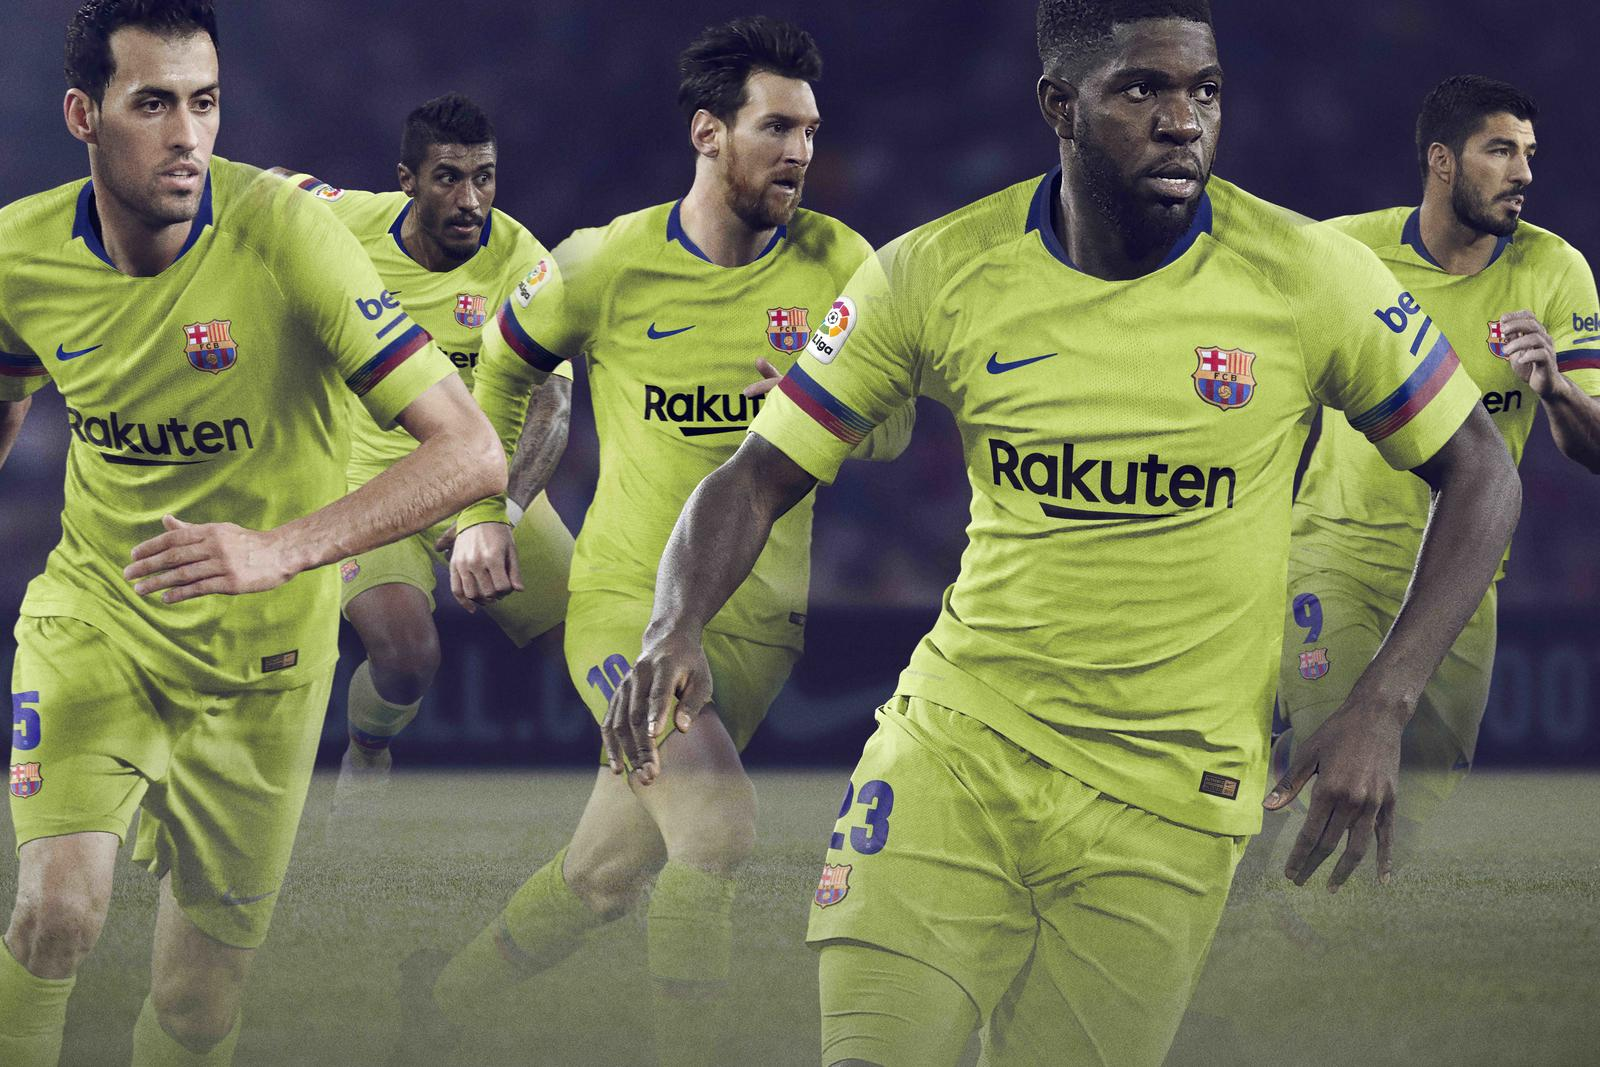 buy online e16c6 551d4 FC Barcelona's Latest Away Kit Revels in a Daring History ...